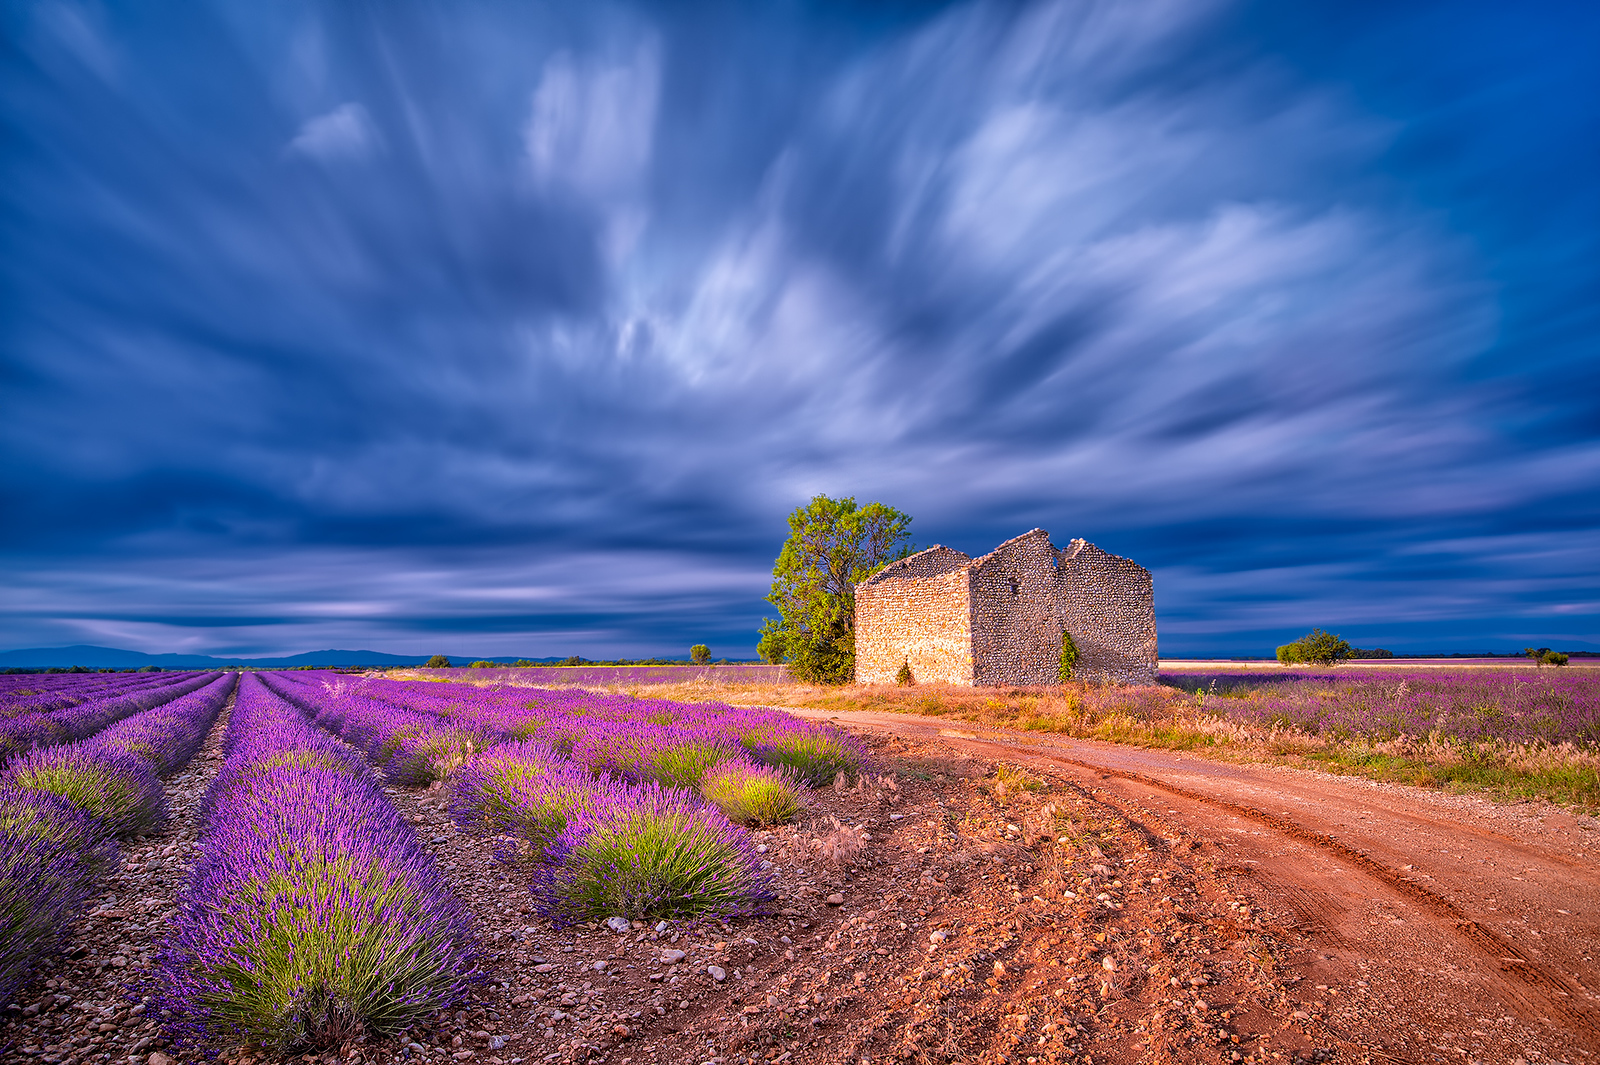 Lavender fields in the Valensole Plain